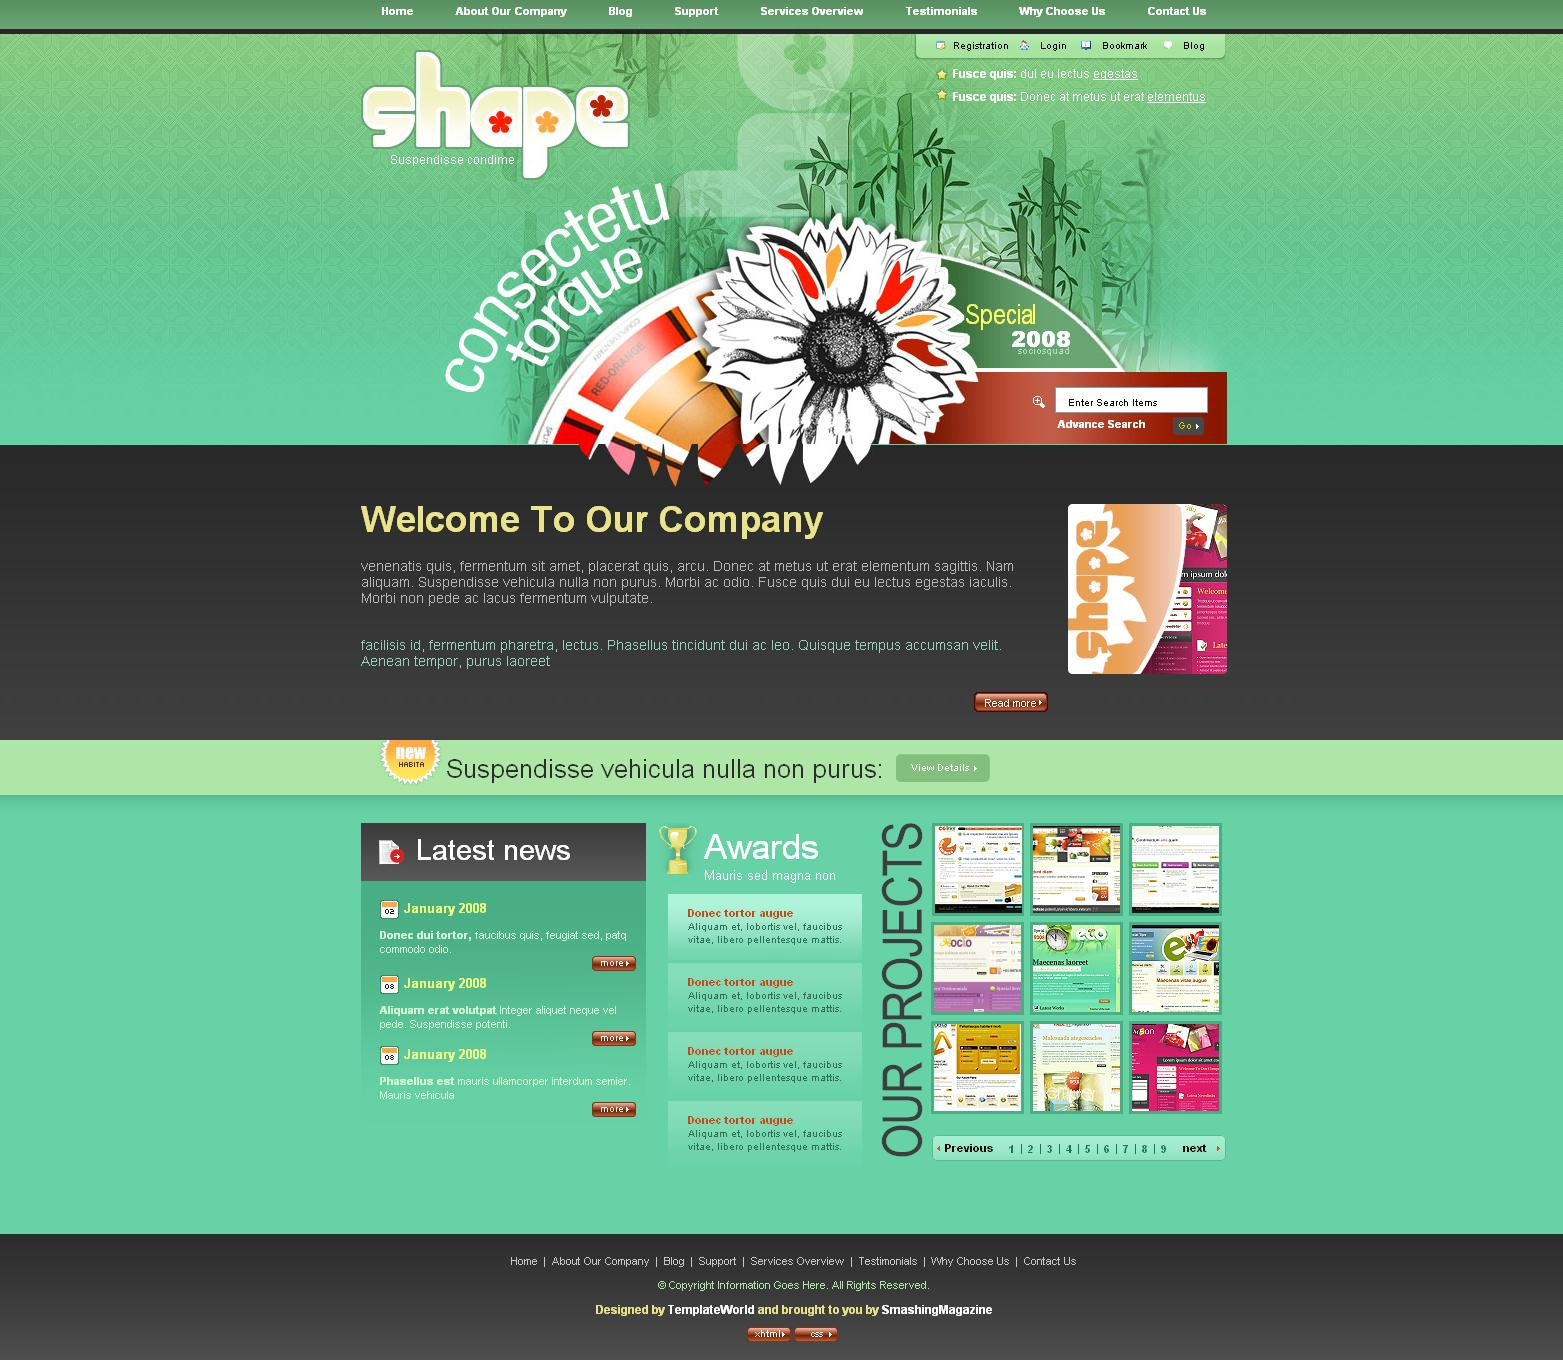 24 psd free website templates - august 2015 edition